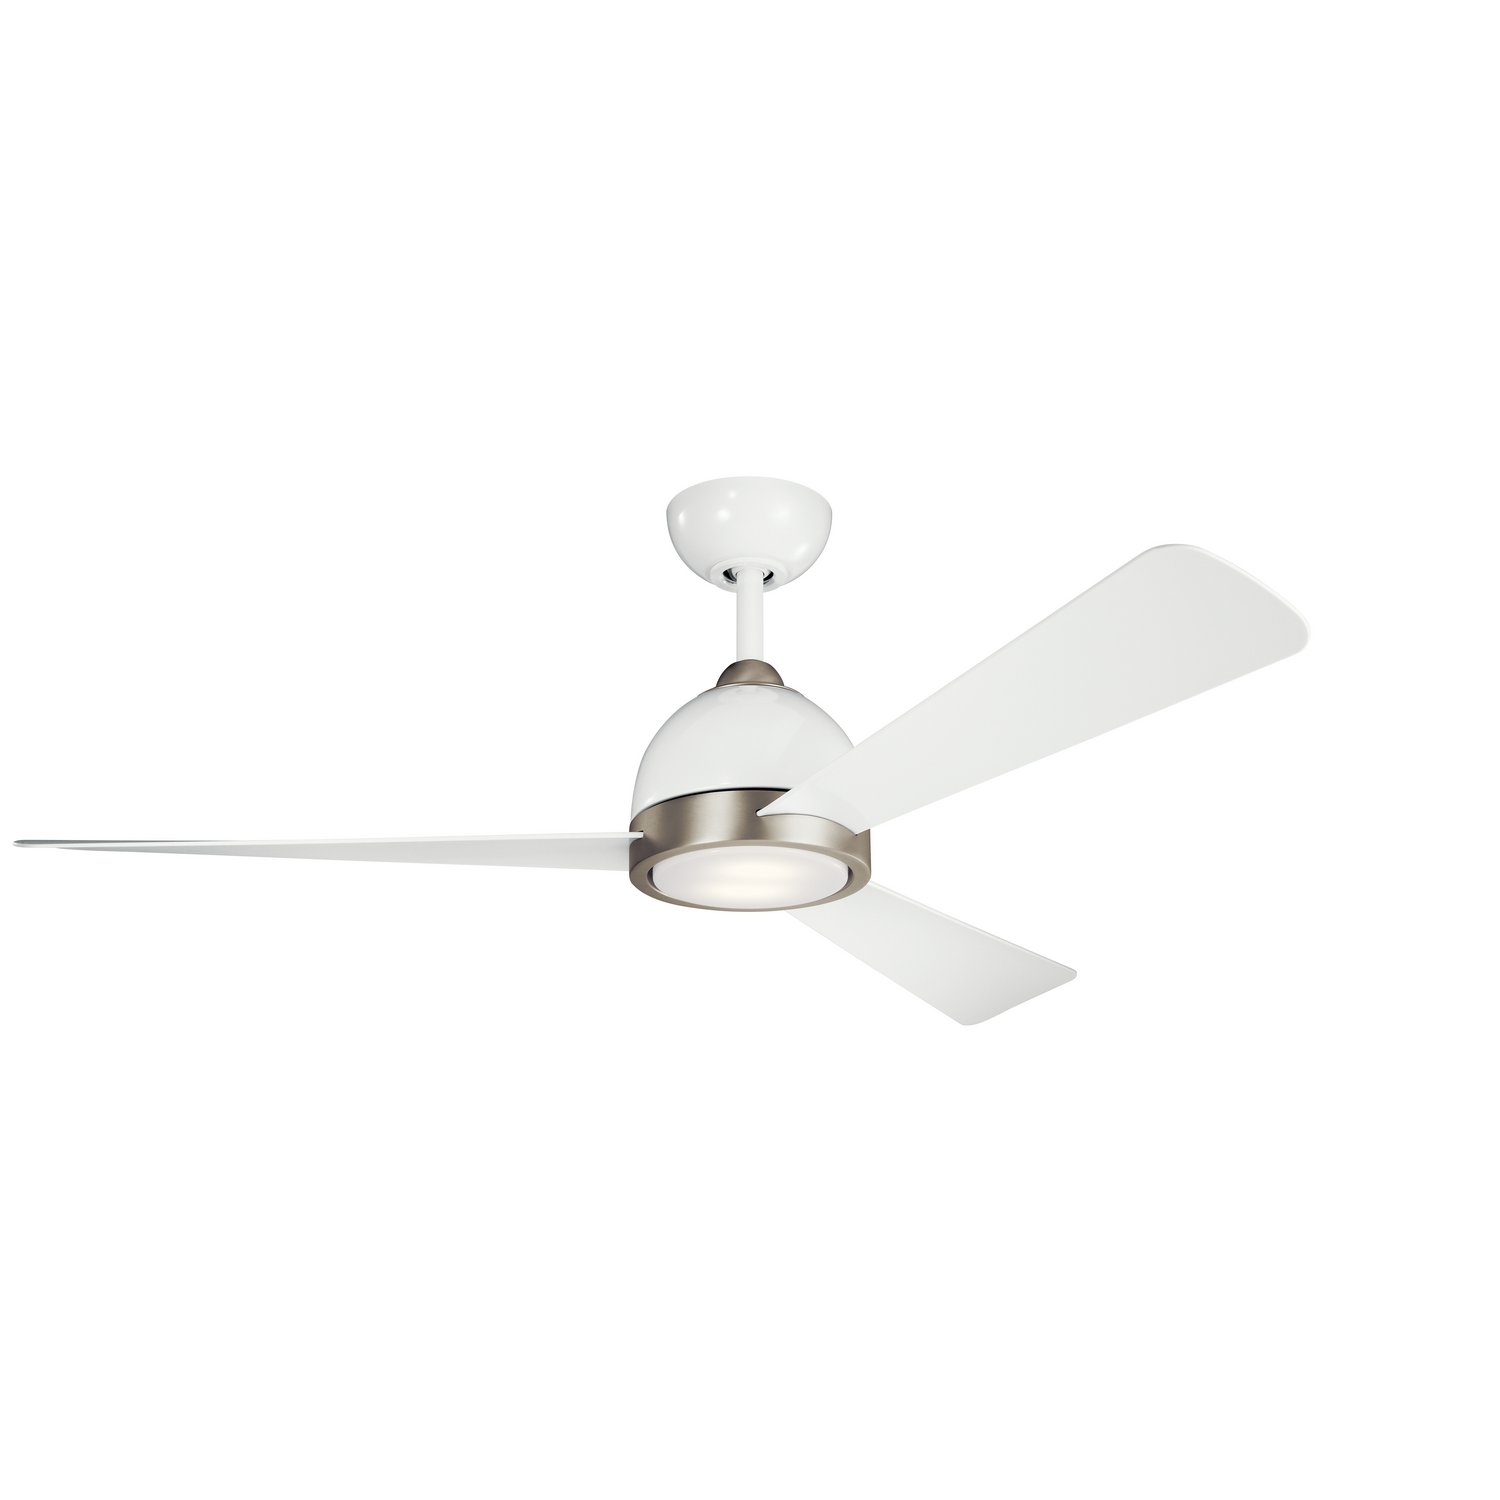 56 inchCeiling Fan from the Incus collection by Kichler 300270WH